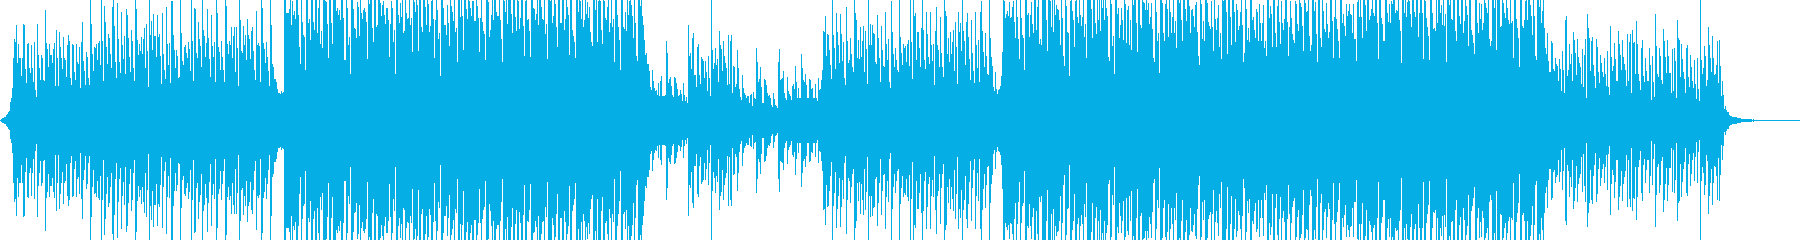 A refreshing and positive corporate BGM's reproduced waveform